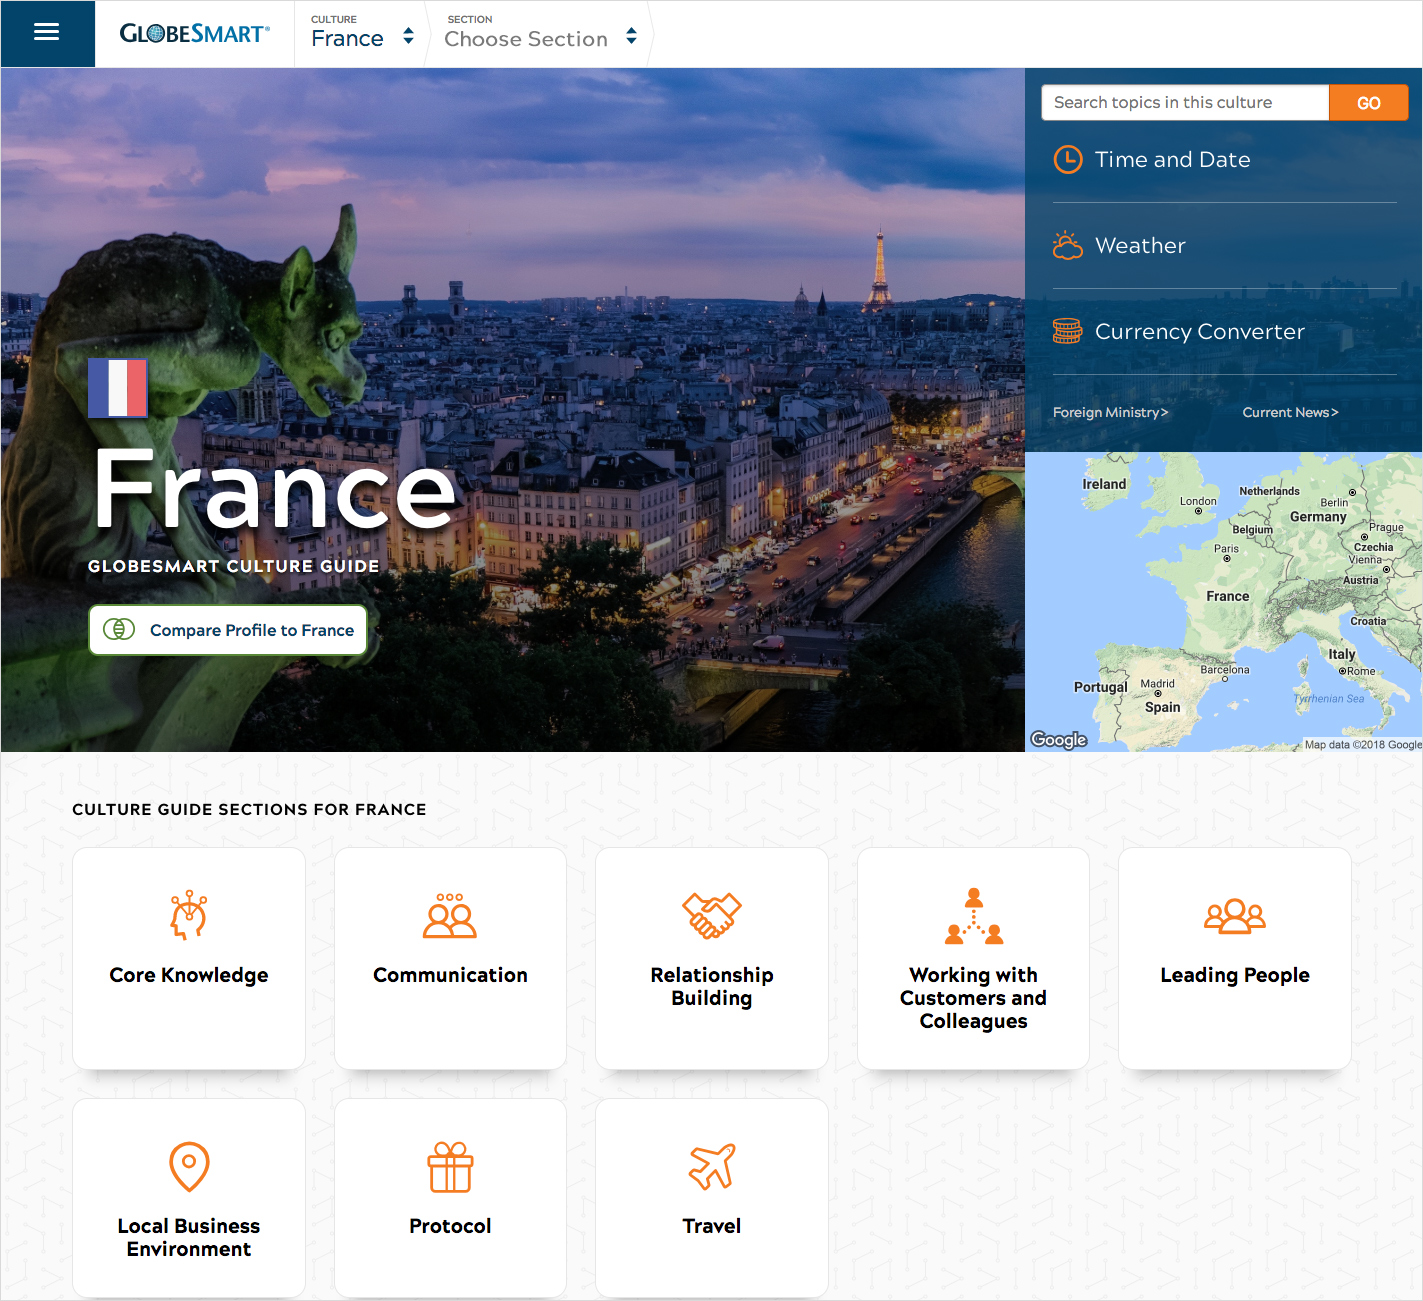 Culture guide homepage for France, which includes a photo of the country, map, flag, currency converter, weather, and time and date.